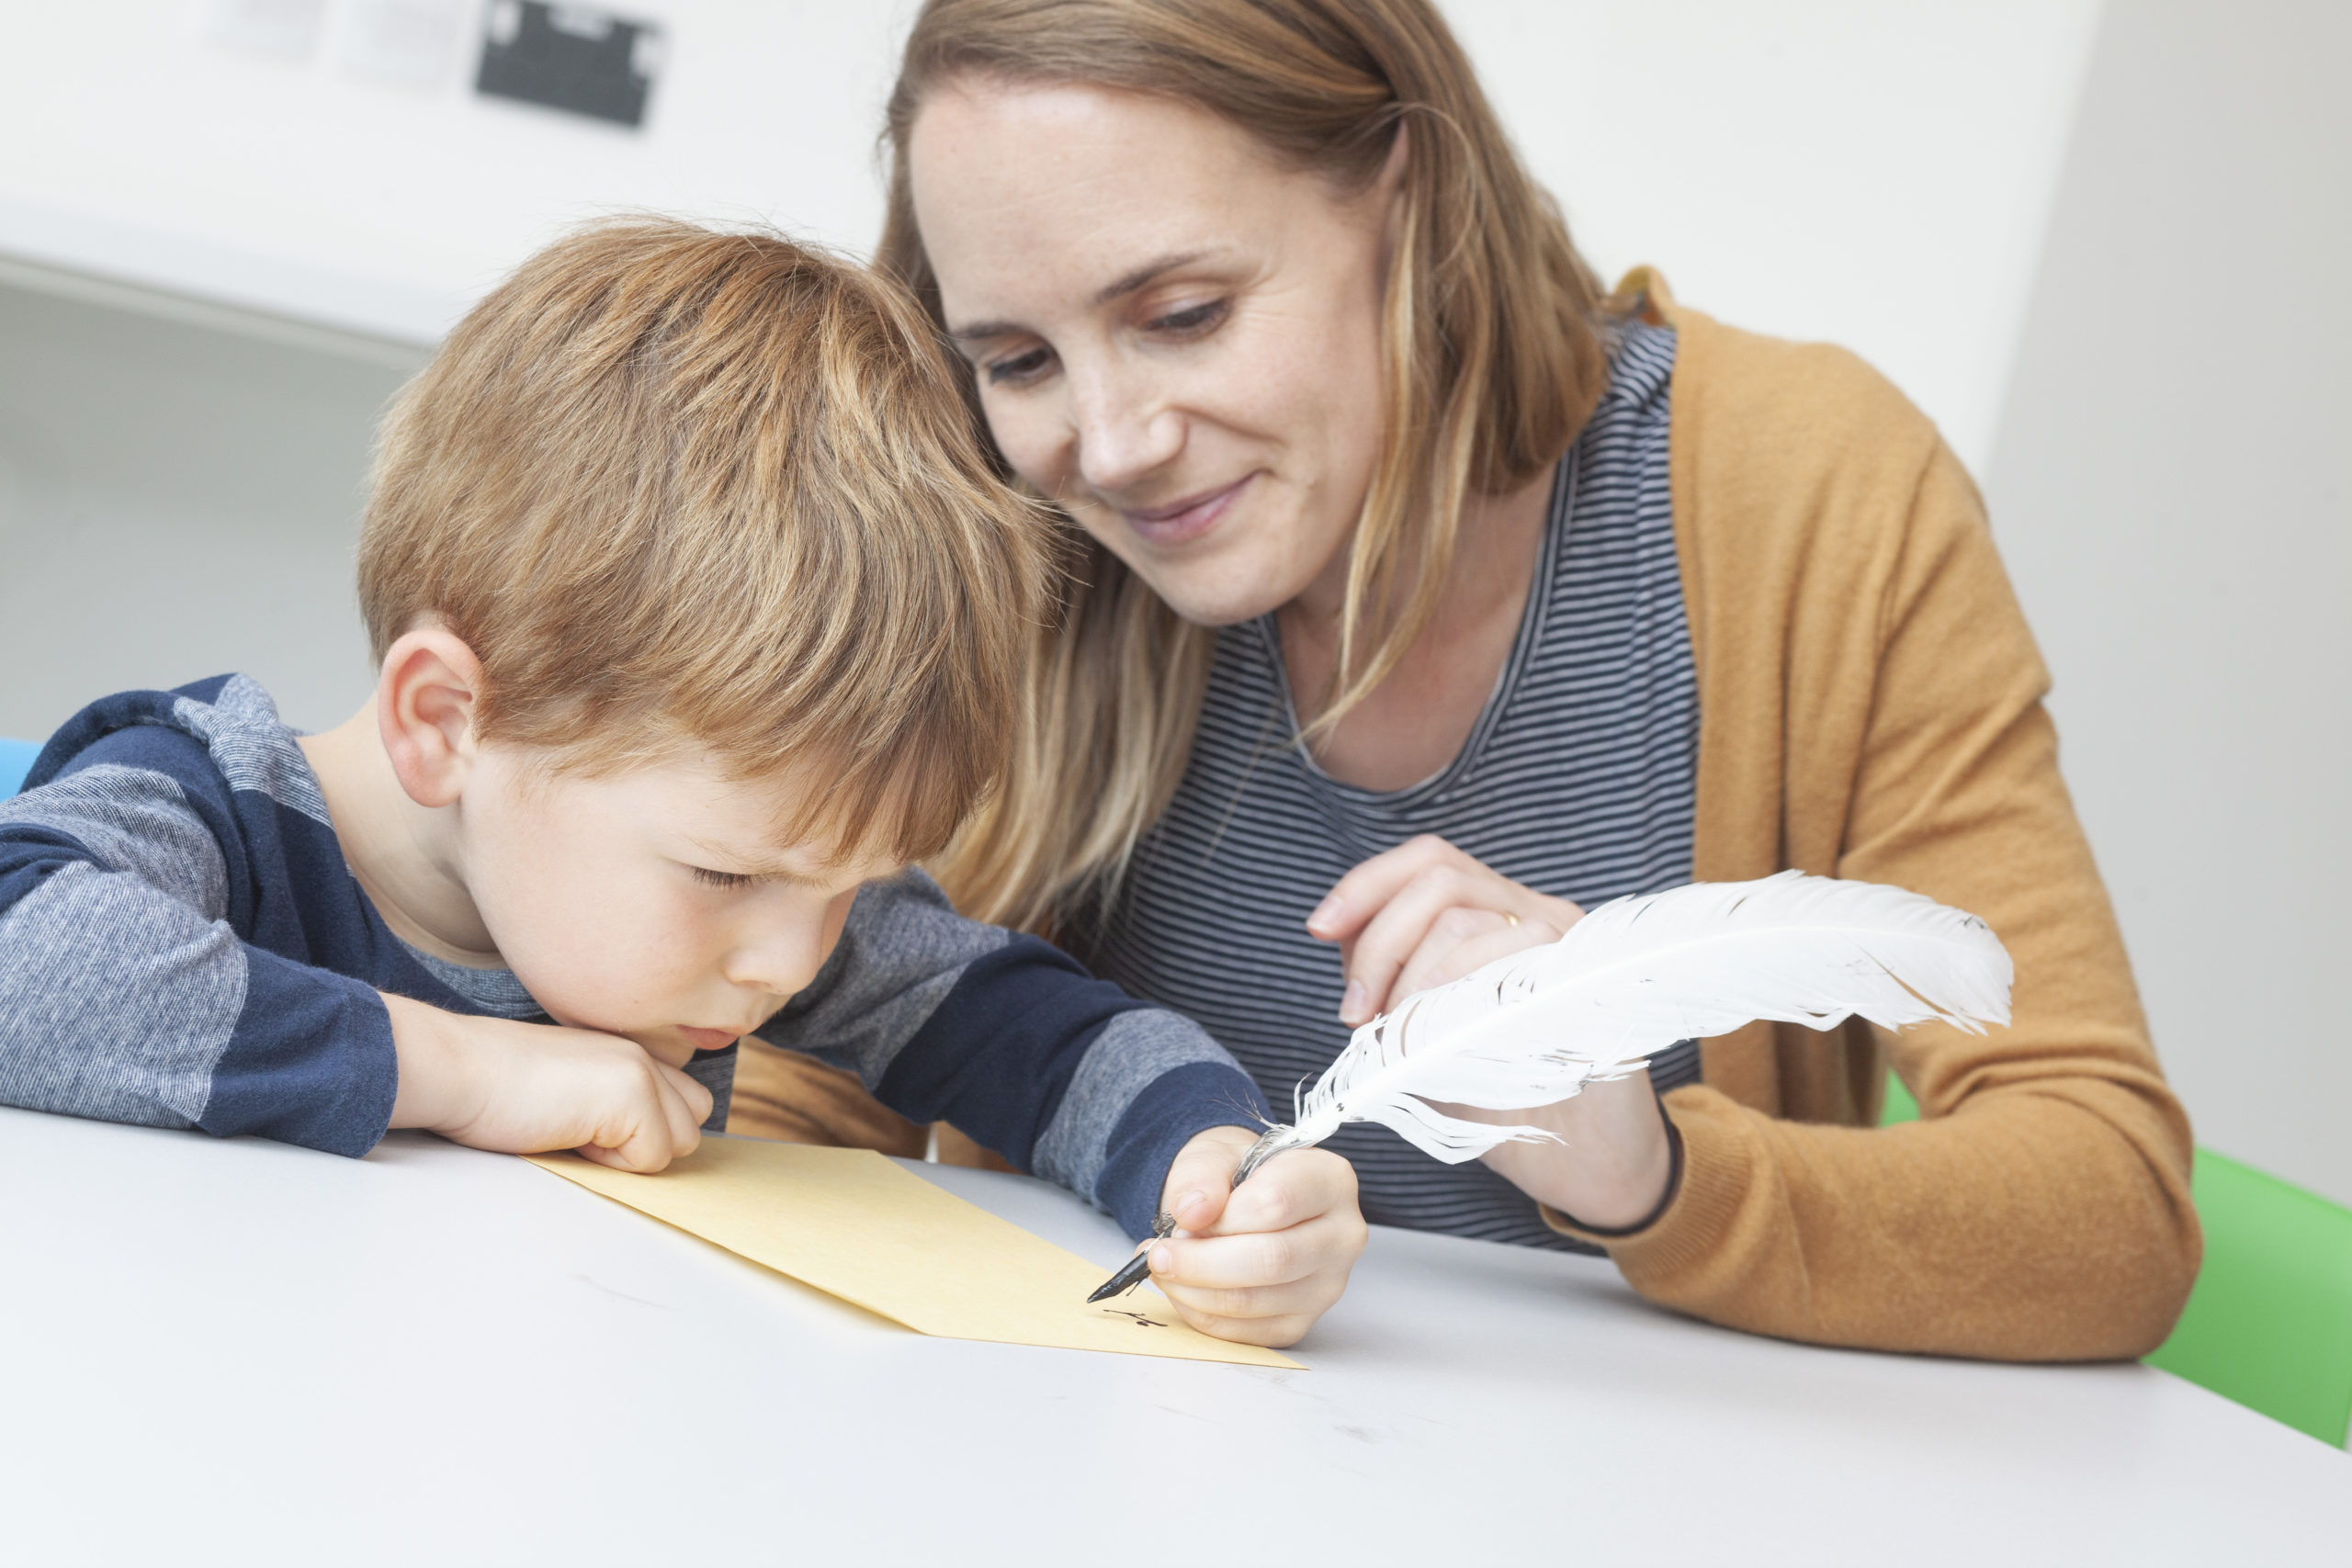 Modern colour photo of child with quill pen and mother watching.